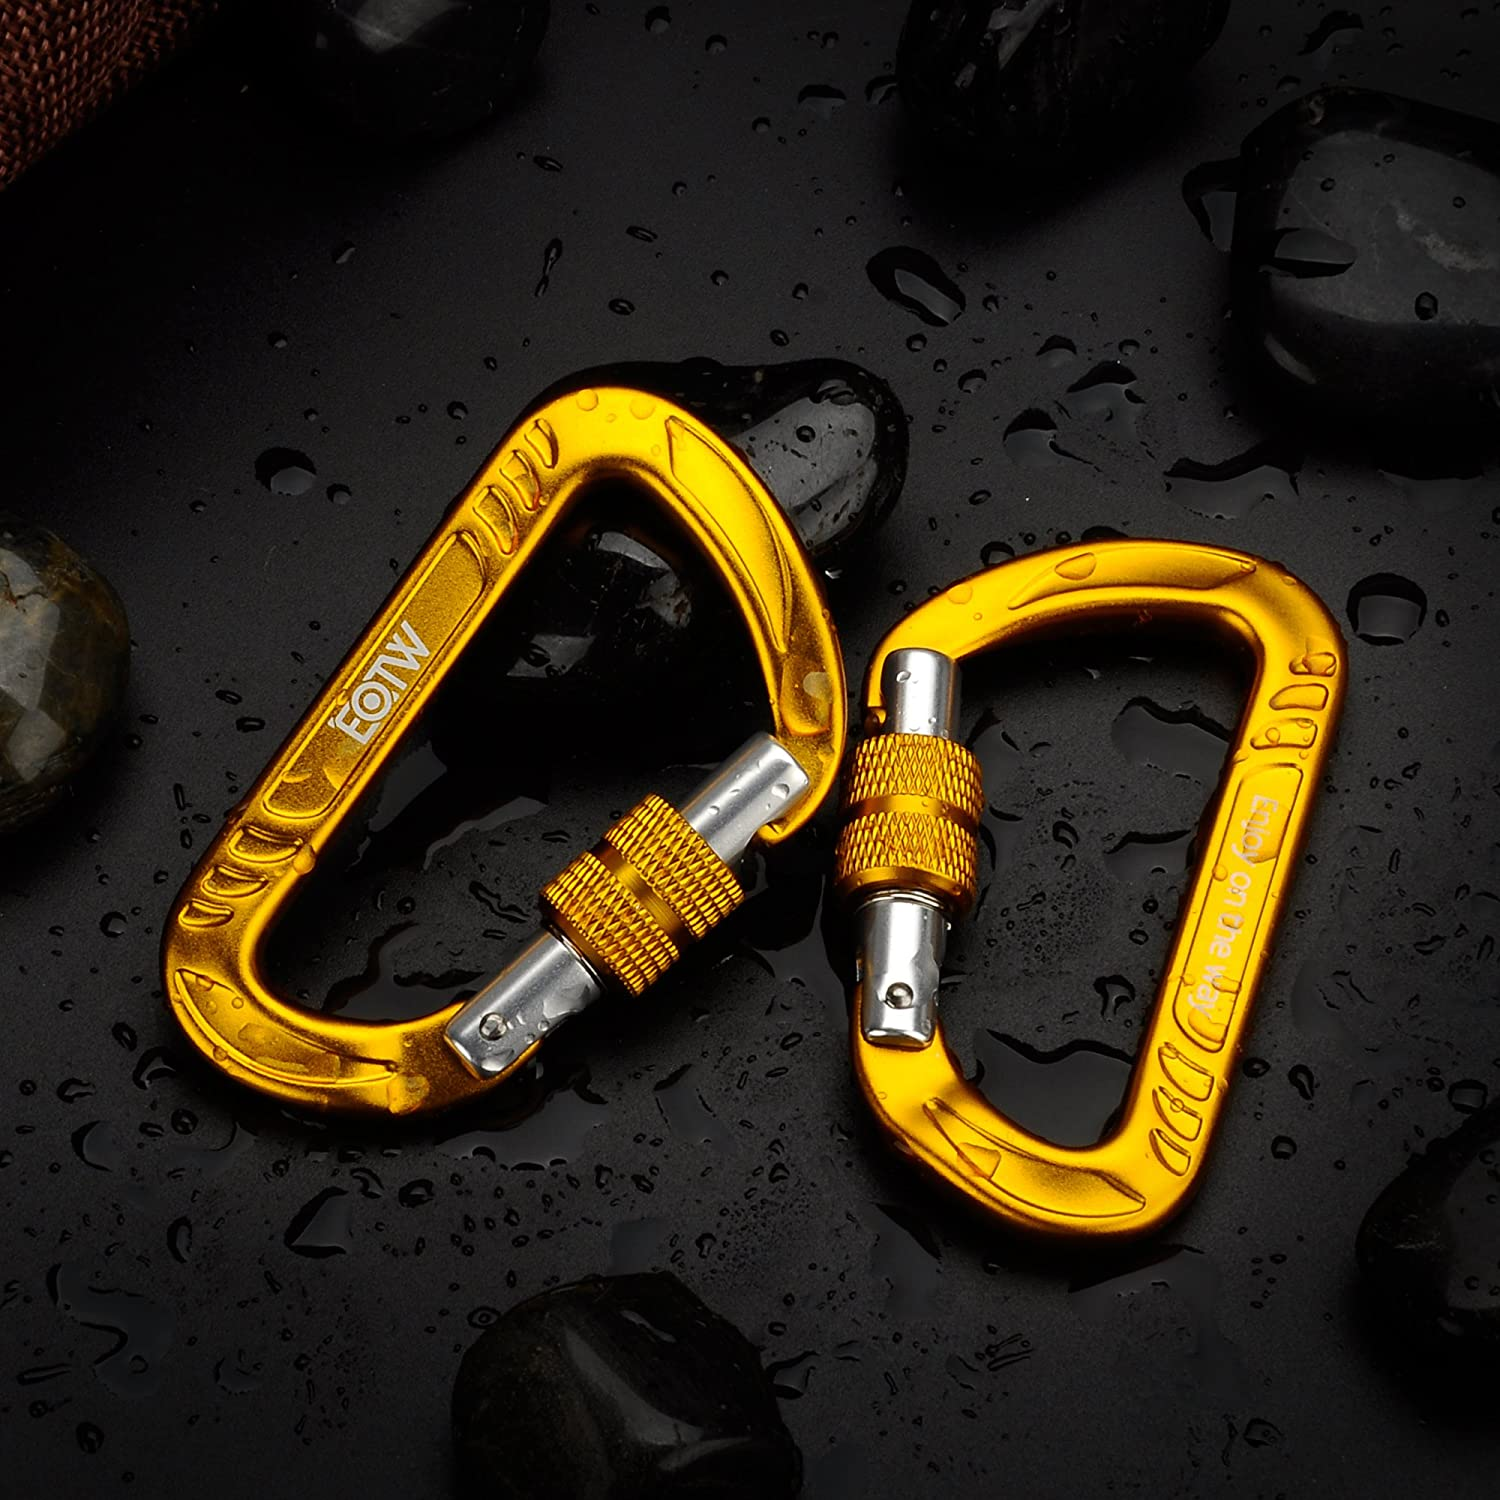 EOTW Aluminum Carabiner Keychain Quickdraw D-Ring Spring Snap Key Chain Clip Hook Lock Buckle Pack D Shape Hanger Holder Premium Utility Outdoor Equipment for Haning Hammock Camping